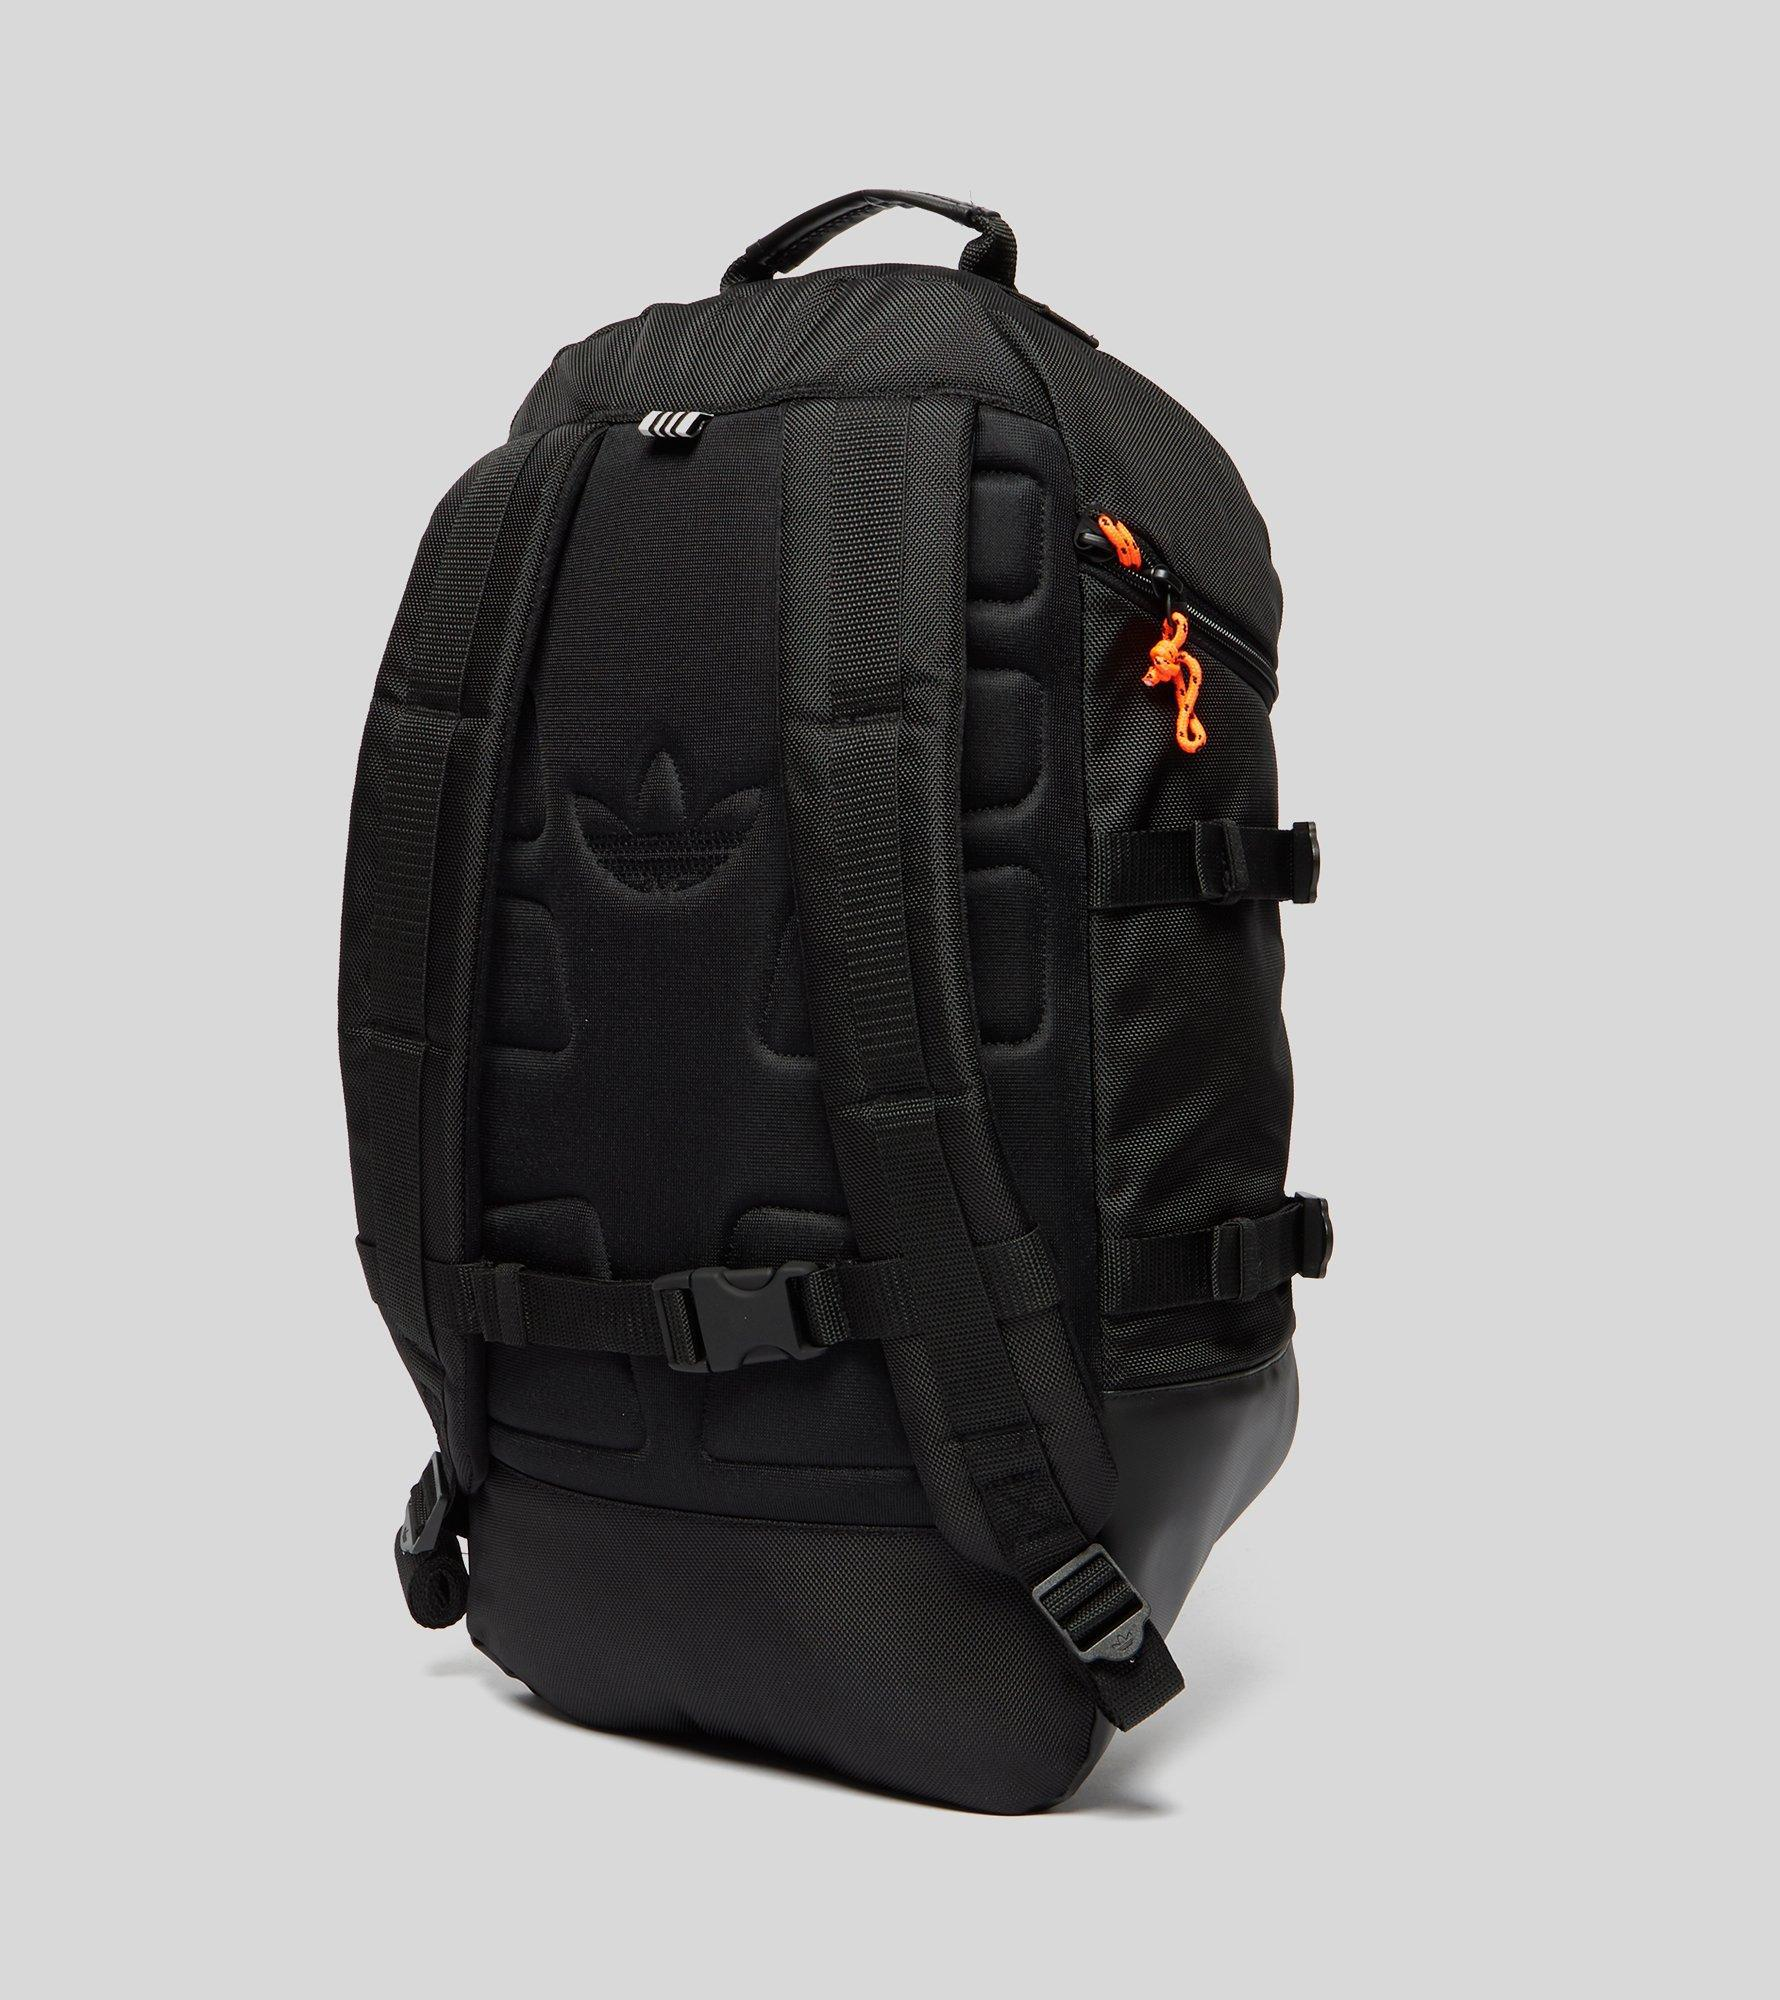 adidas Originals Atric Backpack in Black - Lyst e6b6365e47